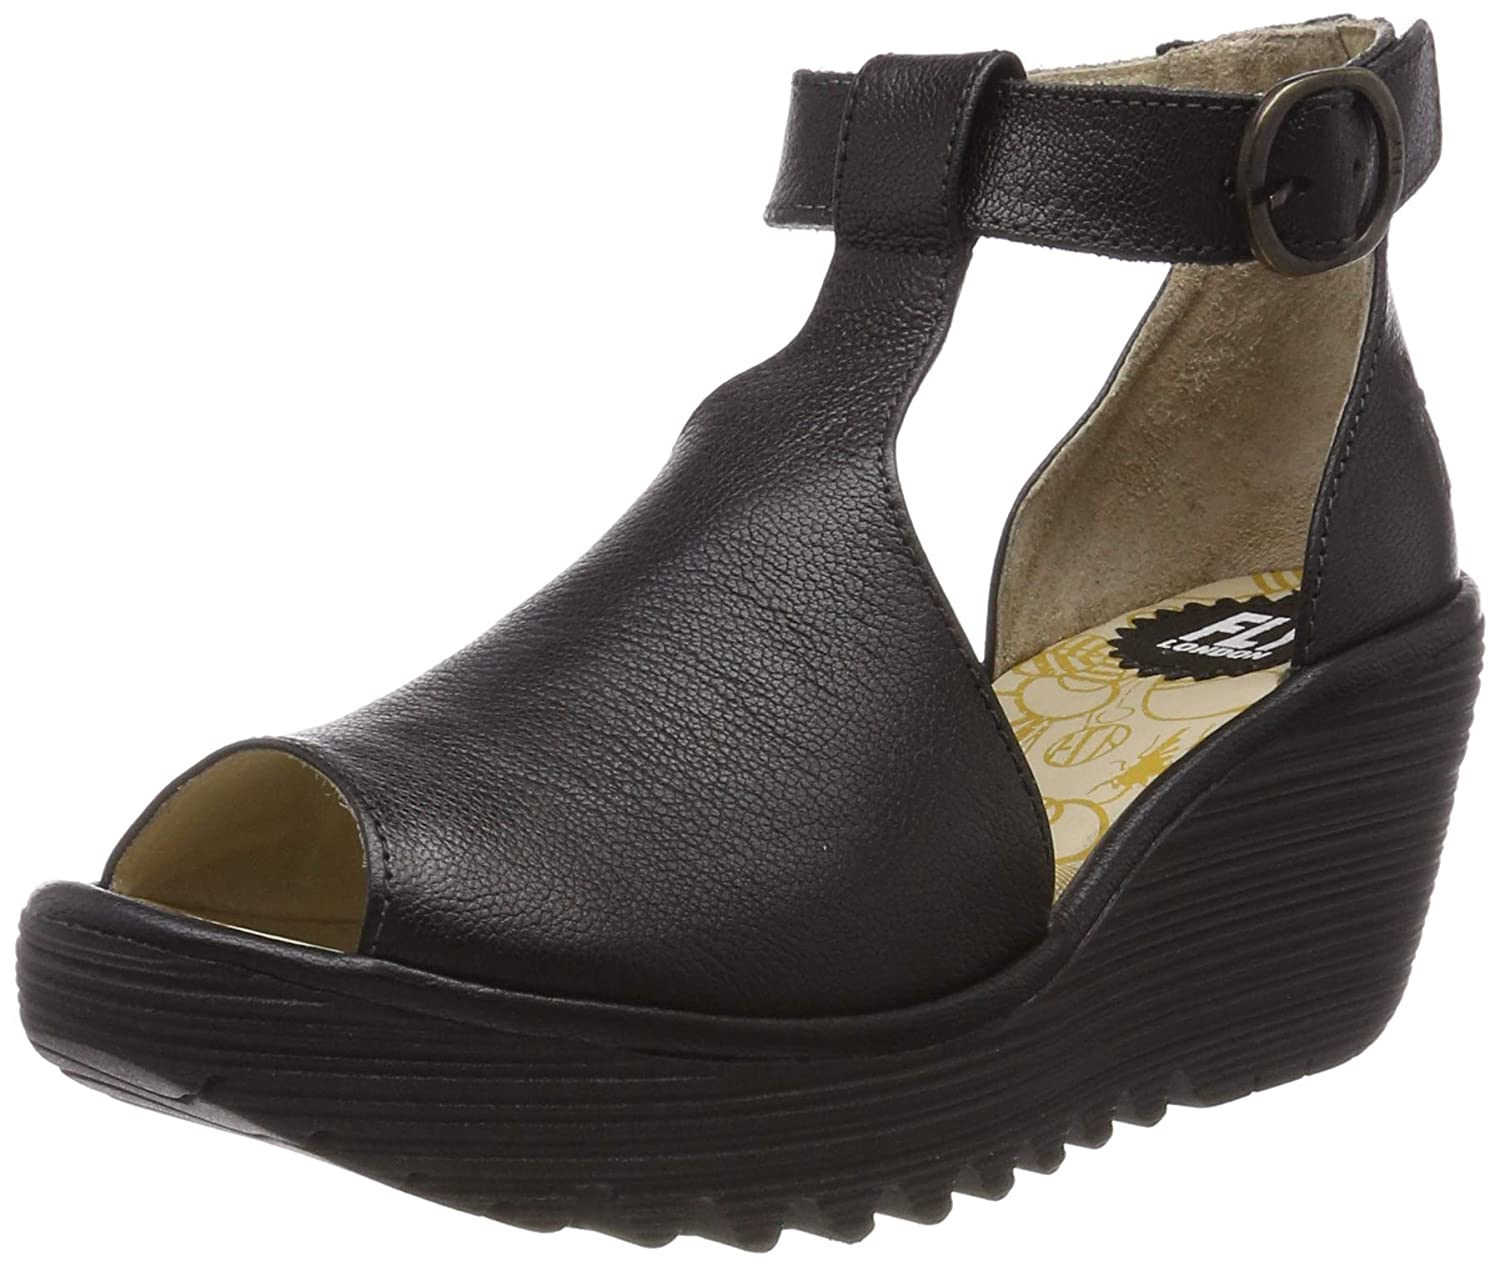 54bdb938 Fly London Women's Yola004fly Ankle Strap Sandals: Amazon.co.uk: Shoes &  Bags